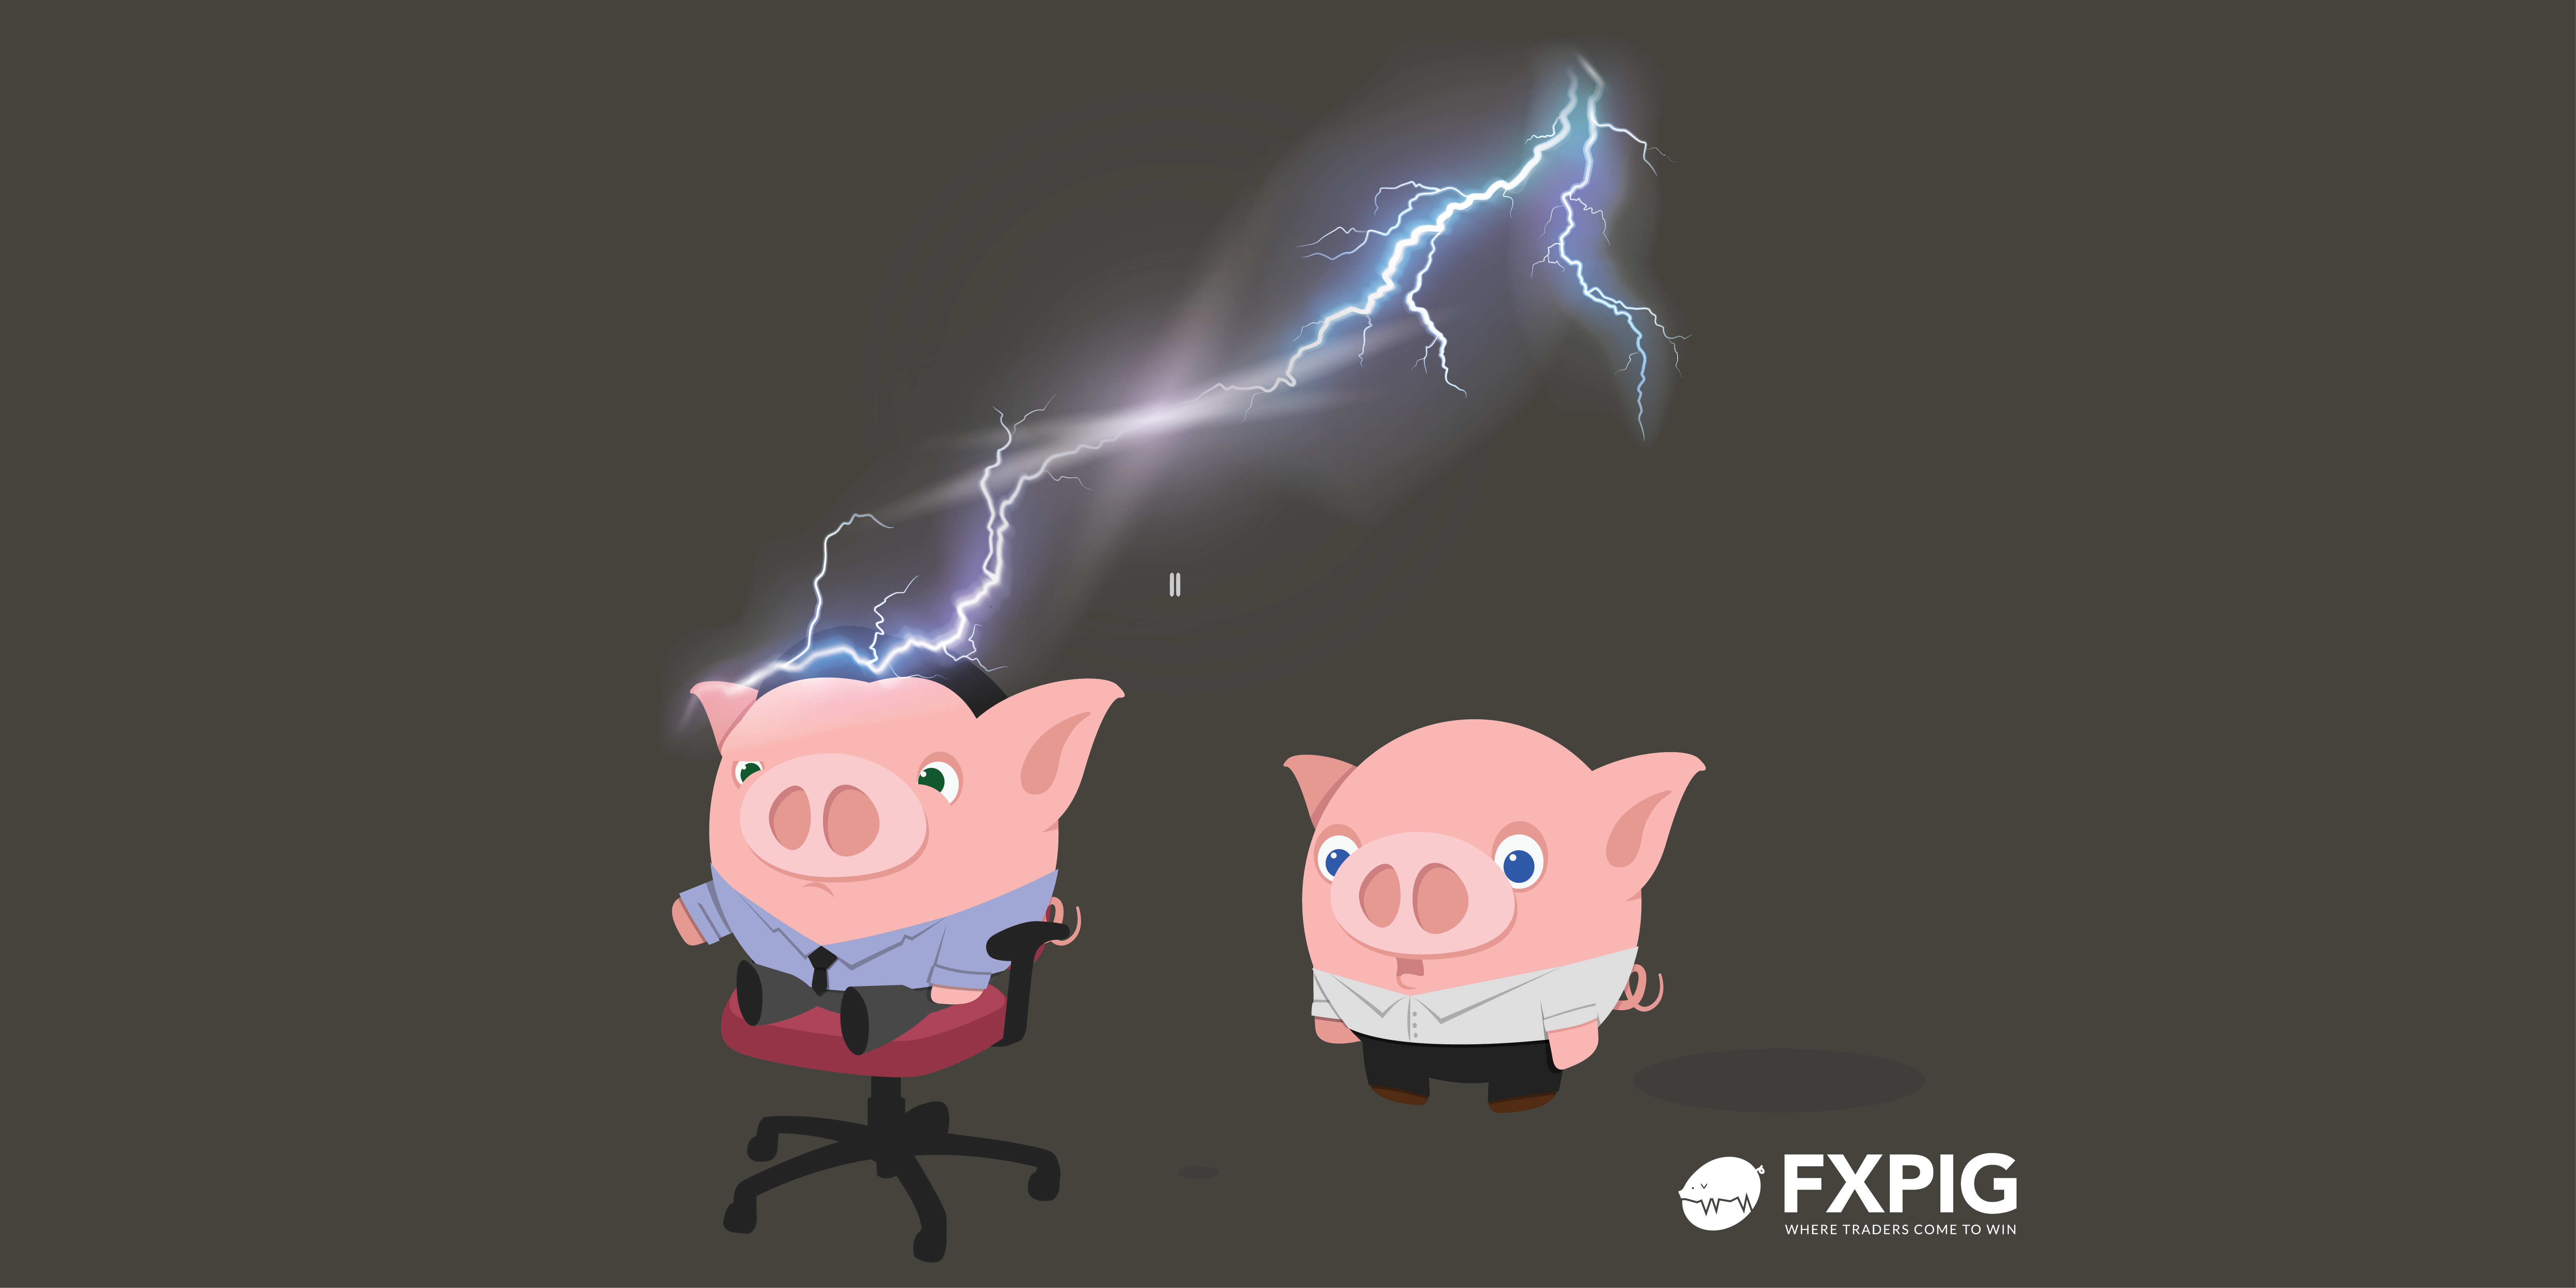 FOREX_Banks-miners-led-the-way-22_FXPIG